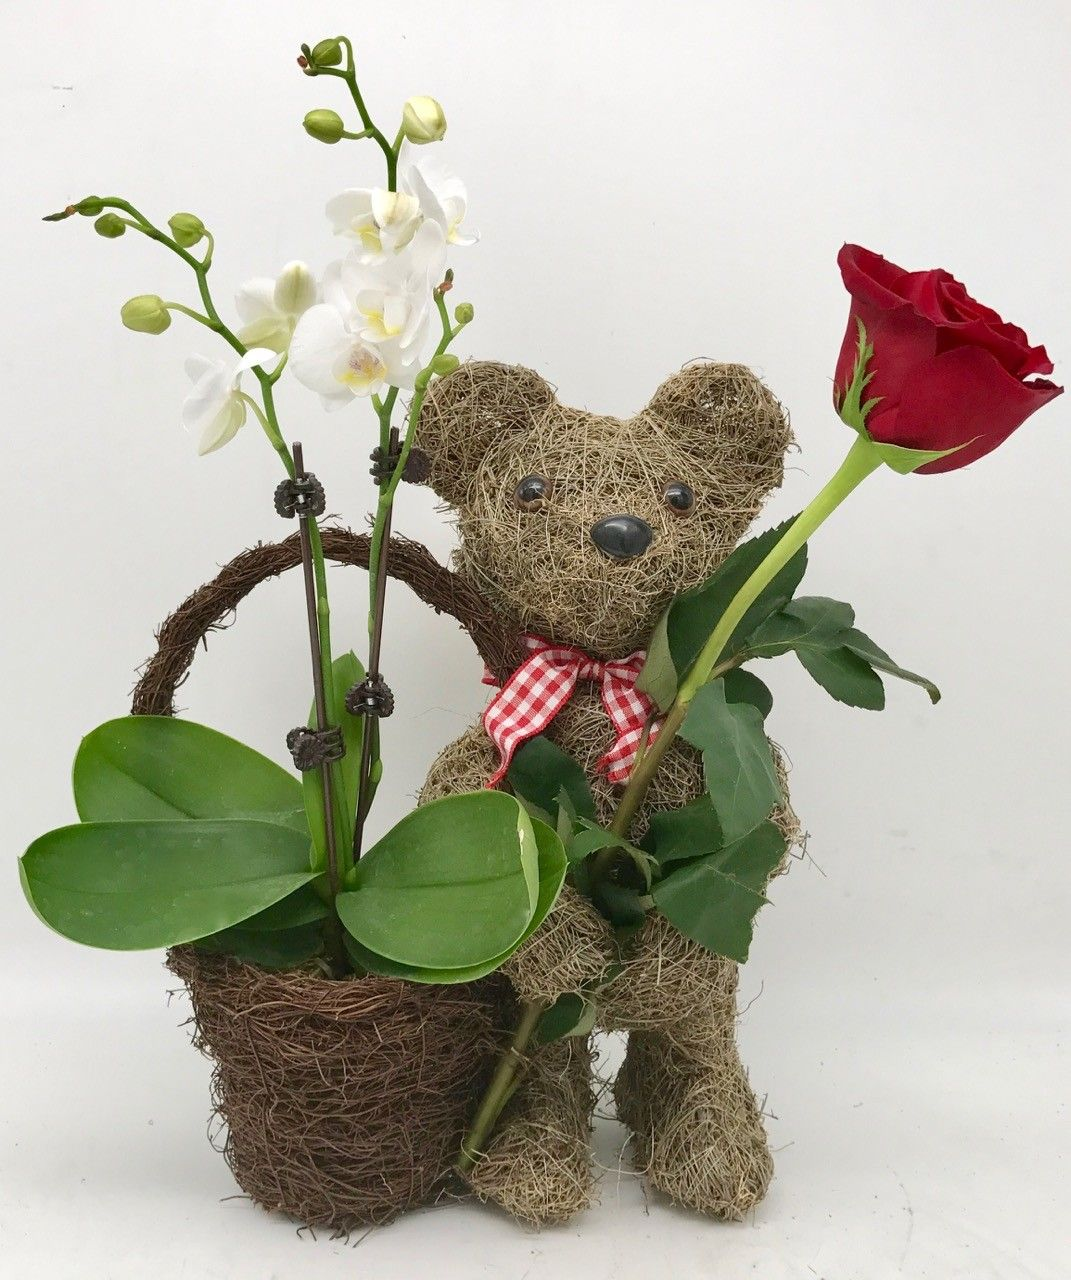 A Mini Orchid & a Rose in a Teddy Bear basket! by Wowsome